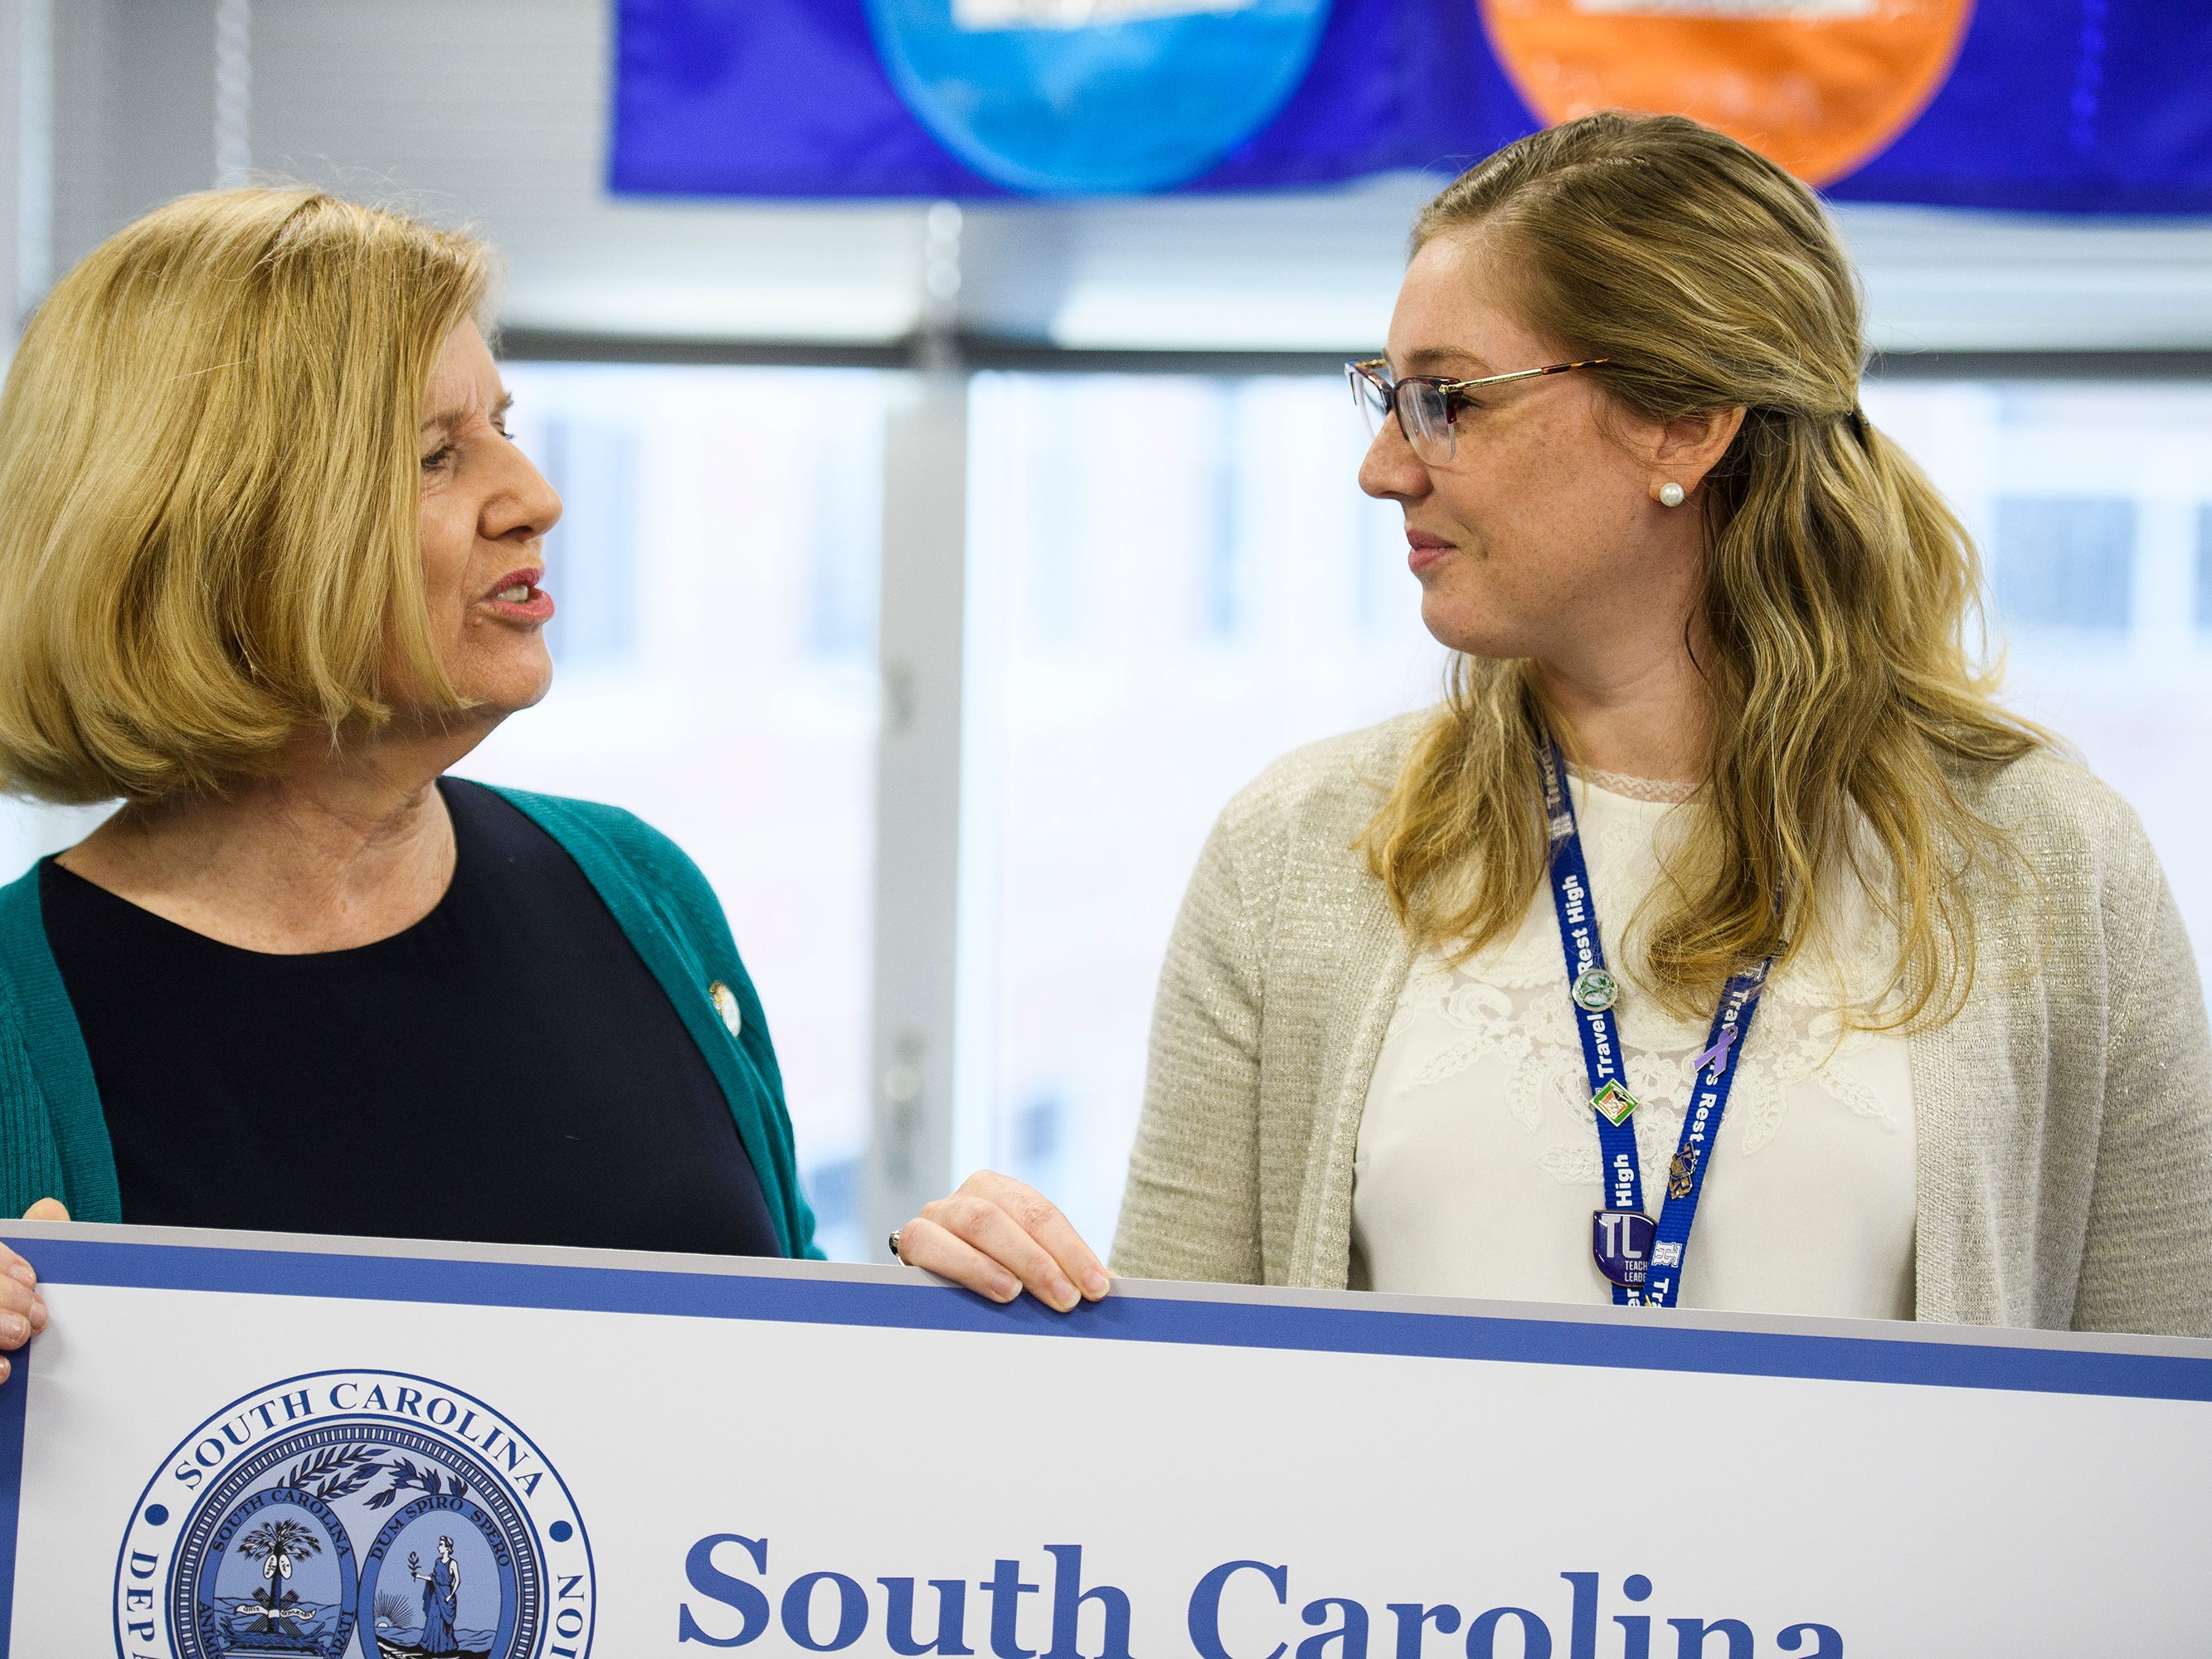 Superintendent of Education Molly Spearman presents Shelley Smith with a check in her classroom after Smith was announced to be one of five South Carolina Teacher of the Year finalists at Travelers Rest High School Wednesday, March 13, 2019.